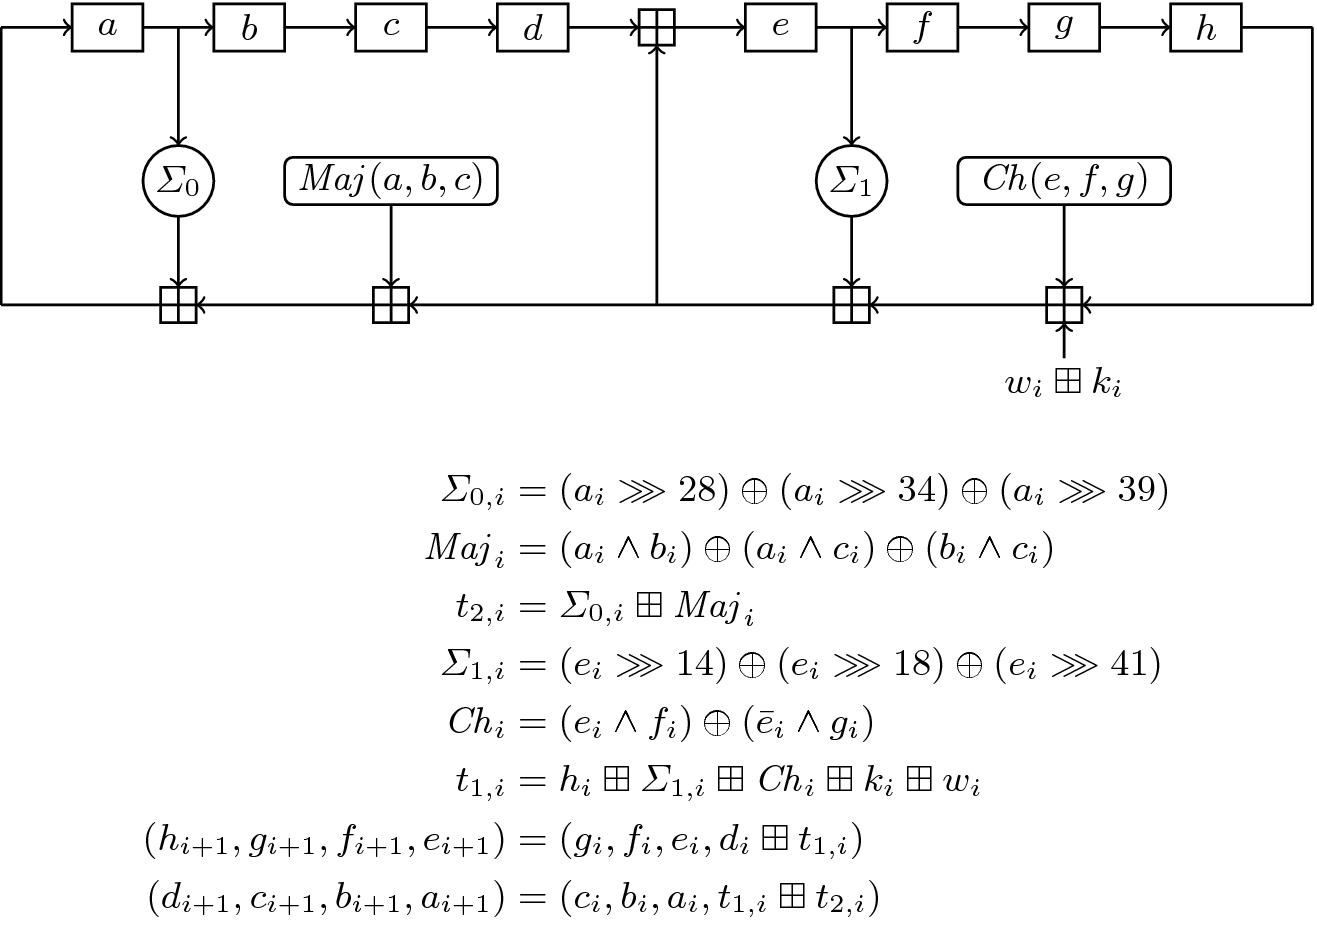 Efficient Implementation of the SHA-512 Hash Function for 8-Bit AVR